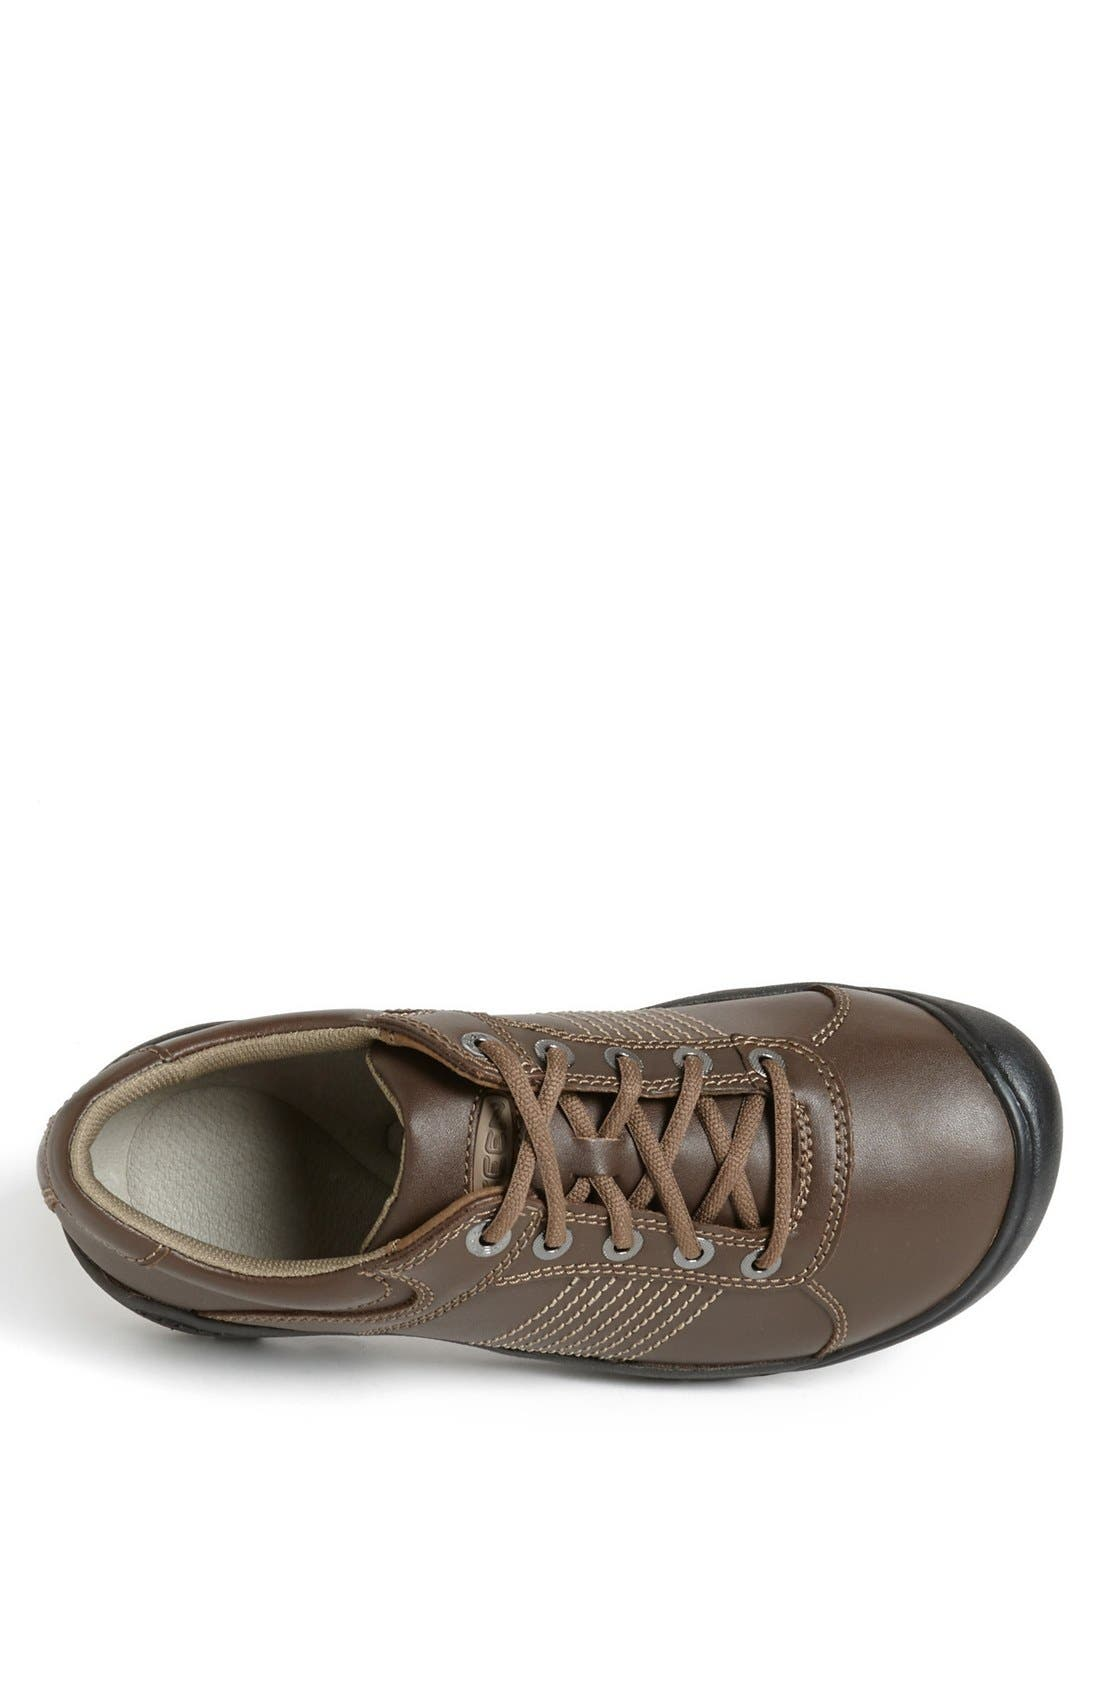 Alternate Image 3  - Keen 'Finlay' Leather Oxford